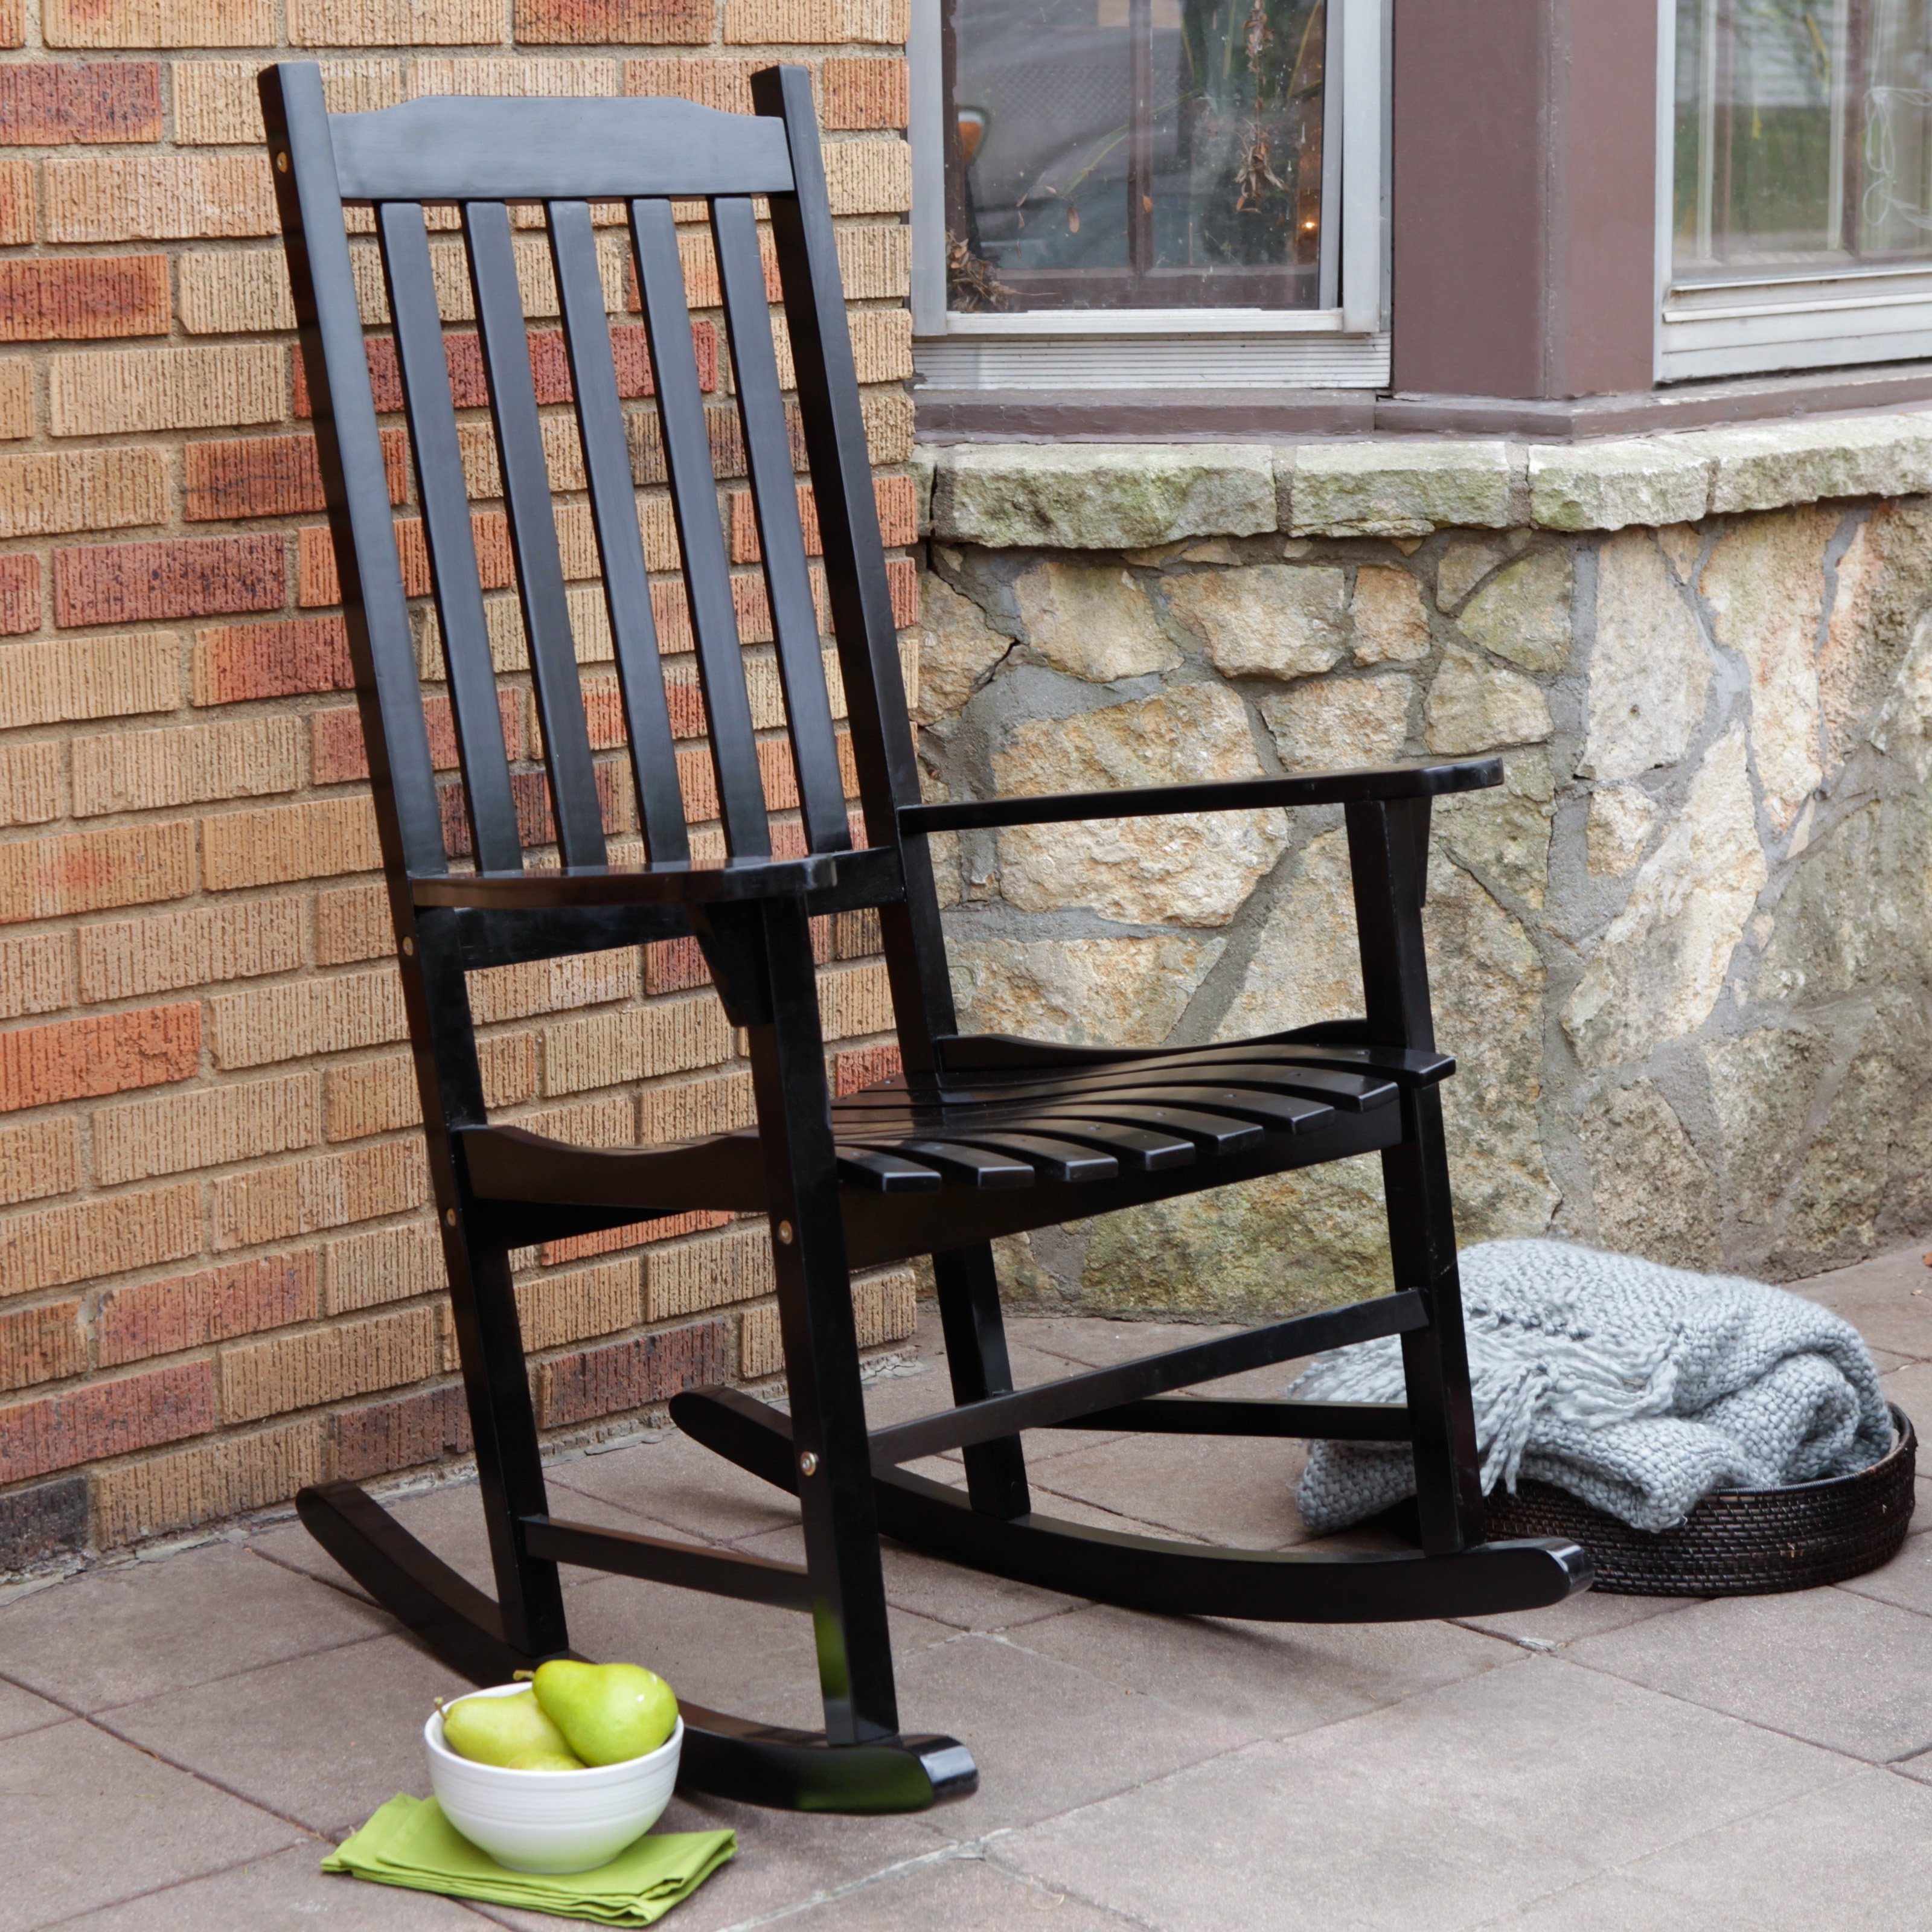 Preferred Unique Outdoor Rocking Chairs With Popularity Gaining Outdoor Rocking Chairs – Carehomedecor (View 11 of 15)